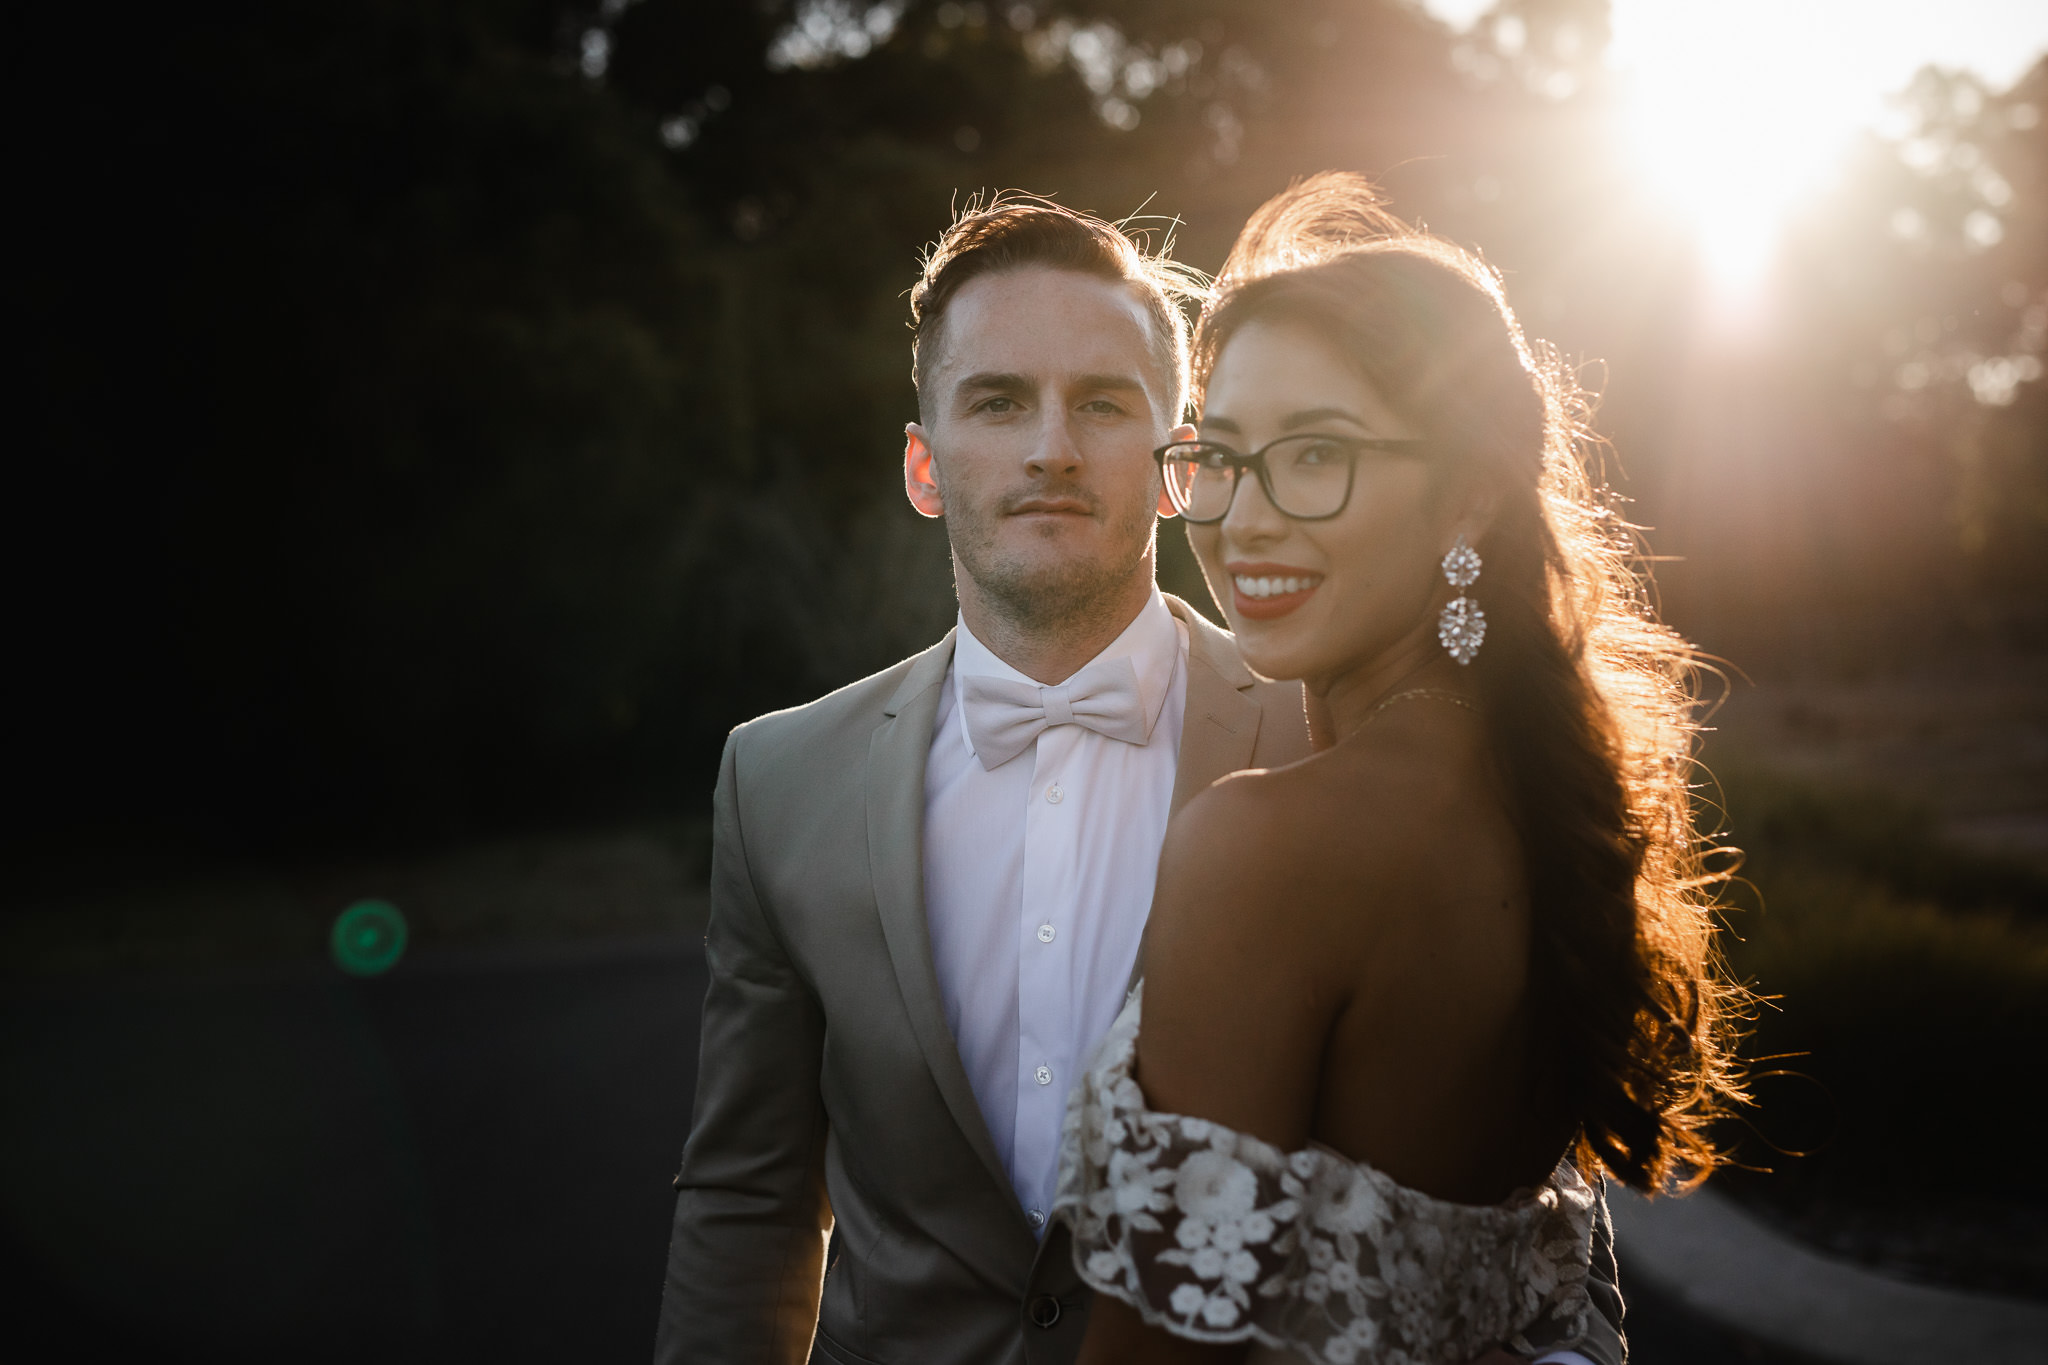 Bride with glasses and groom with bow tie looking at the camera while standing in front of dark trees and bright sun flare over their shoulder